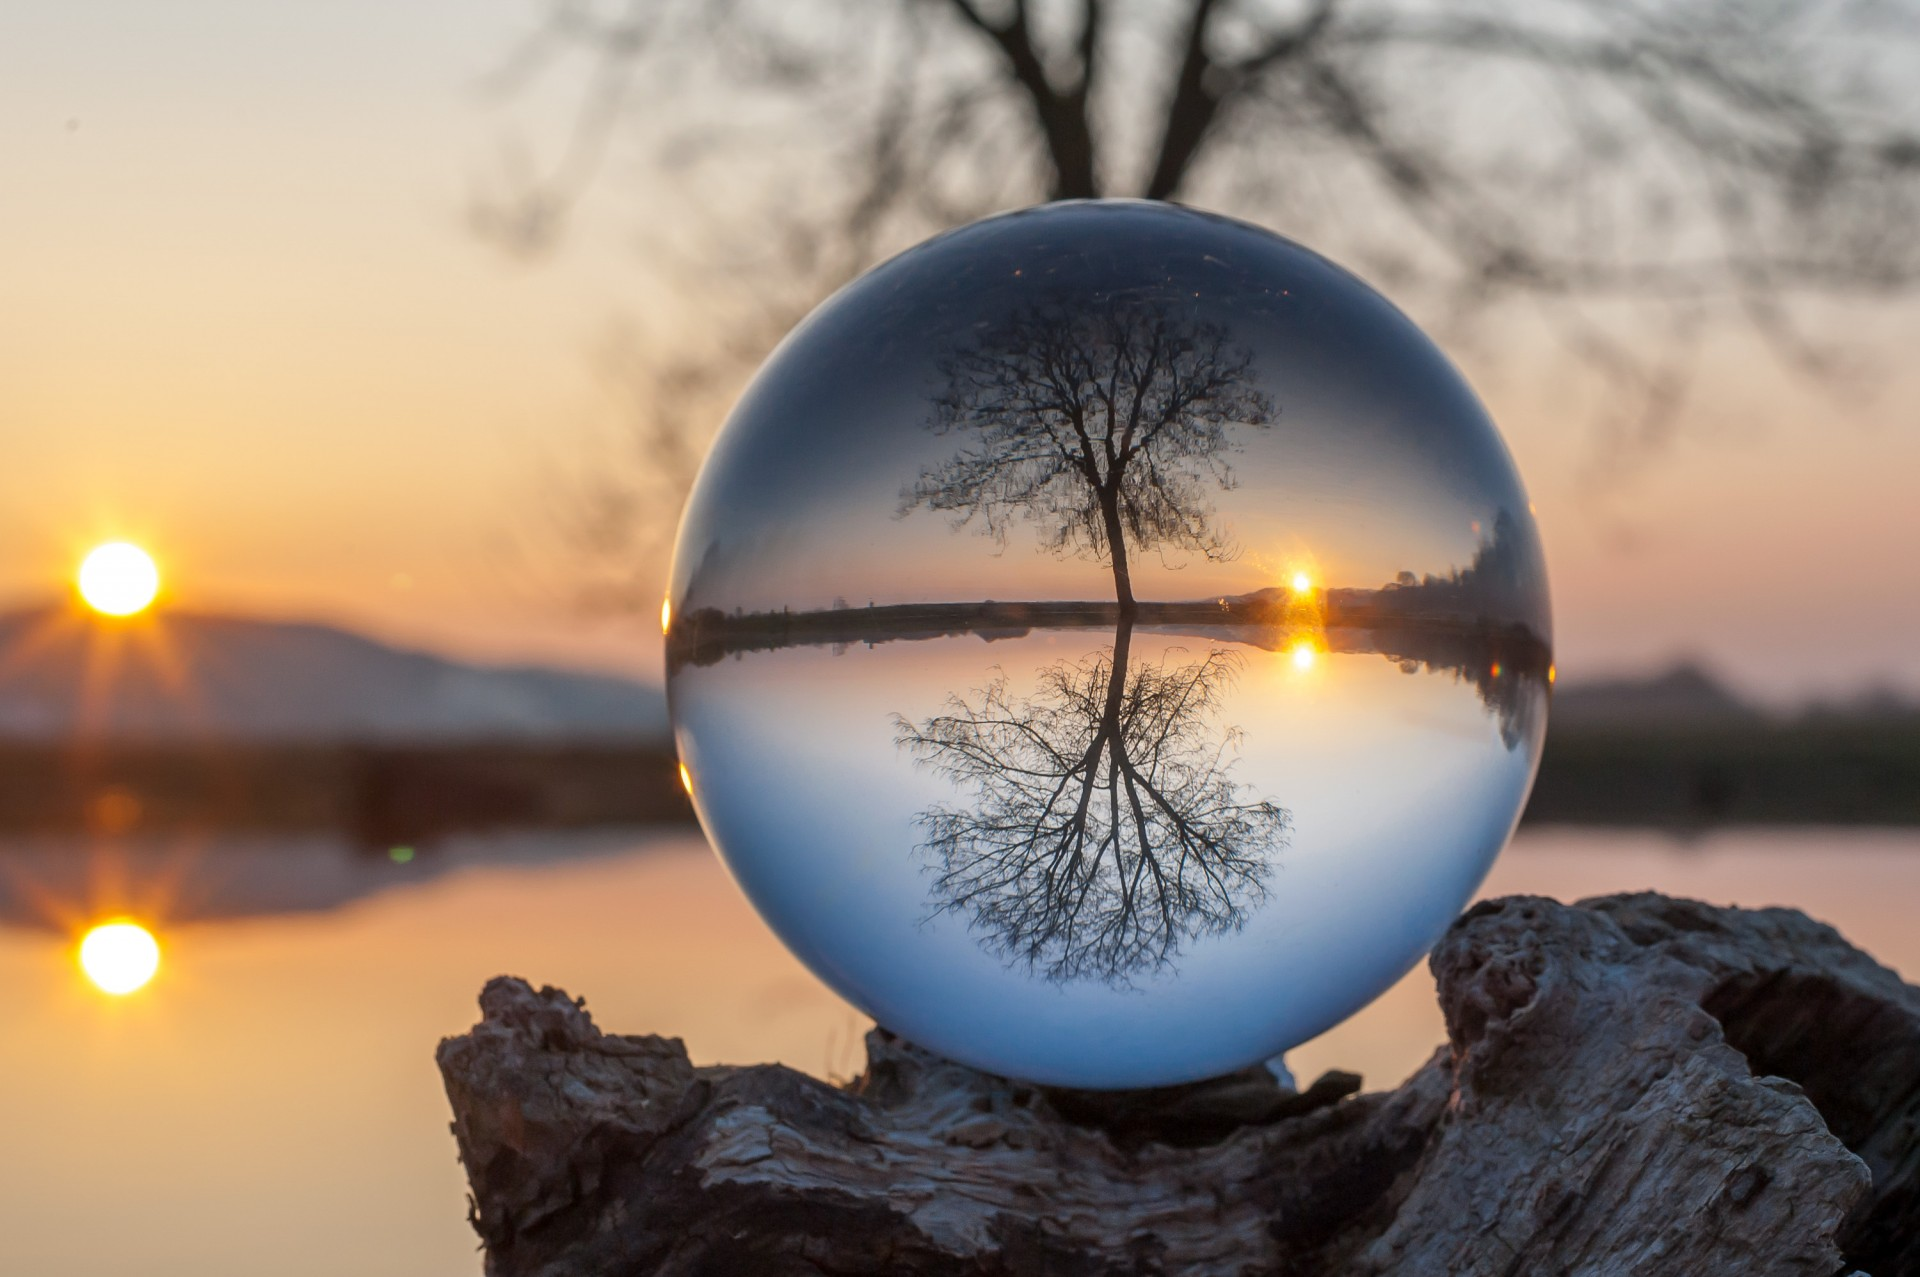 Glass ball project — photographer andrius aleksandravičius